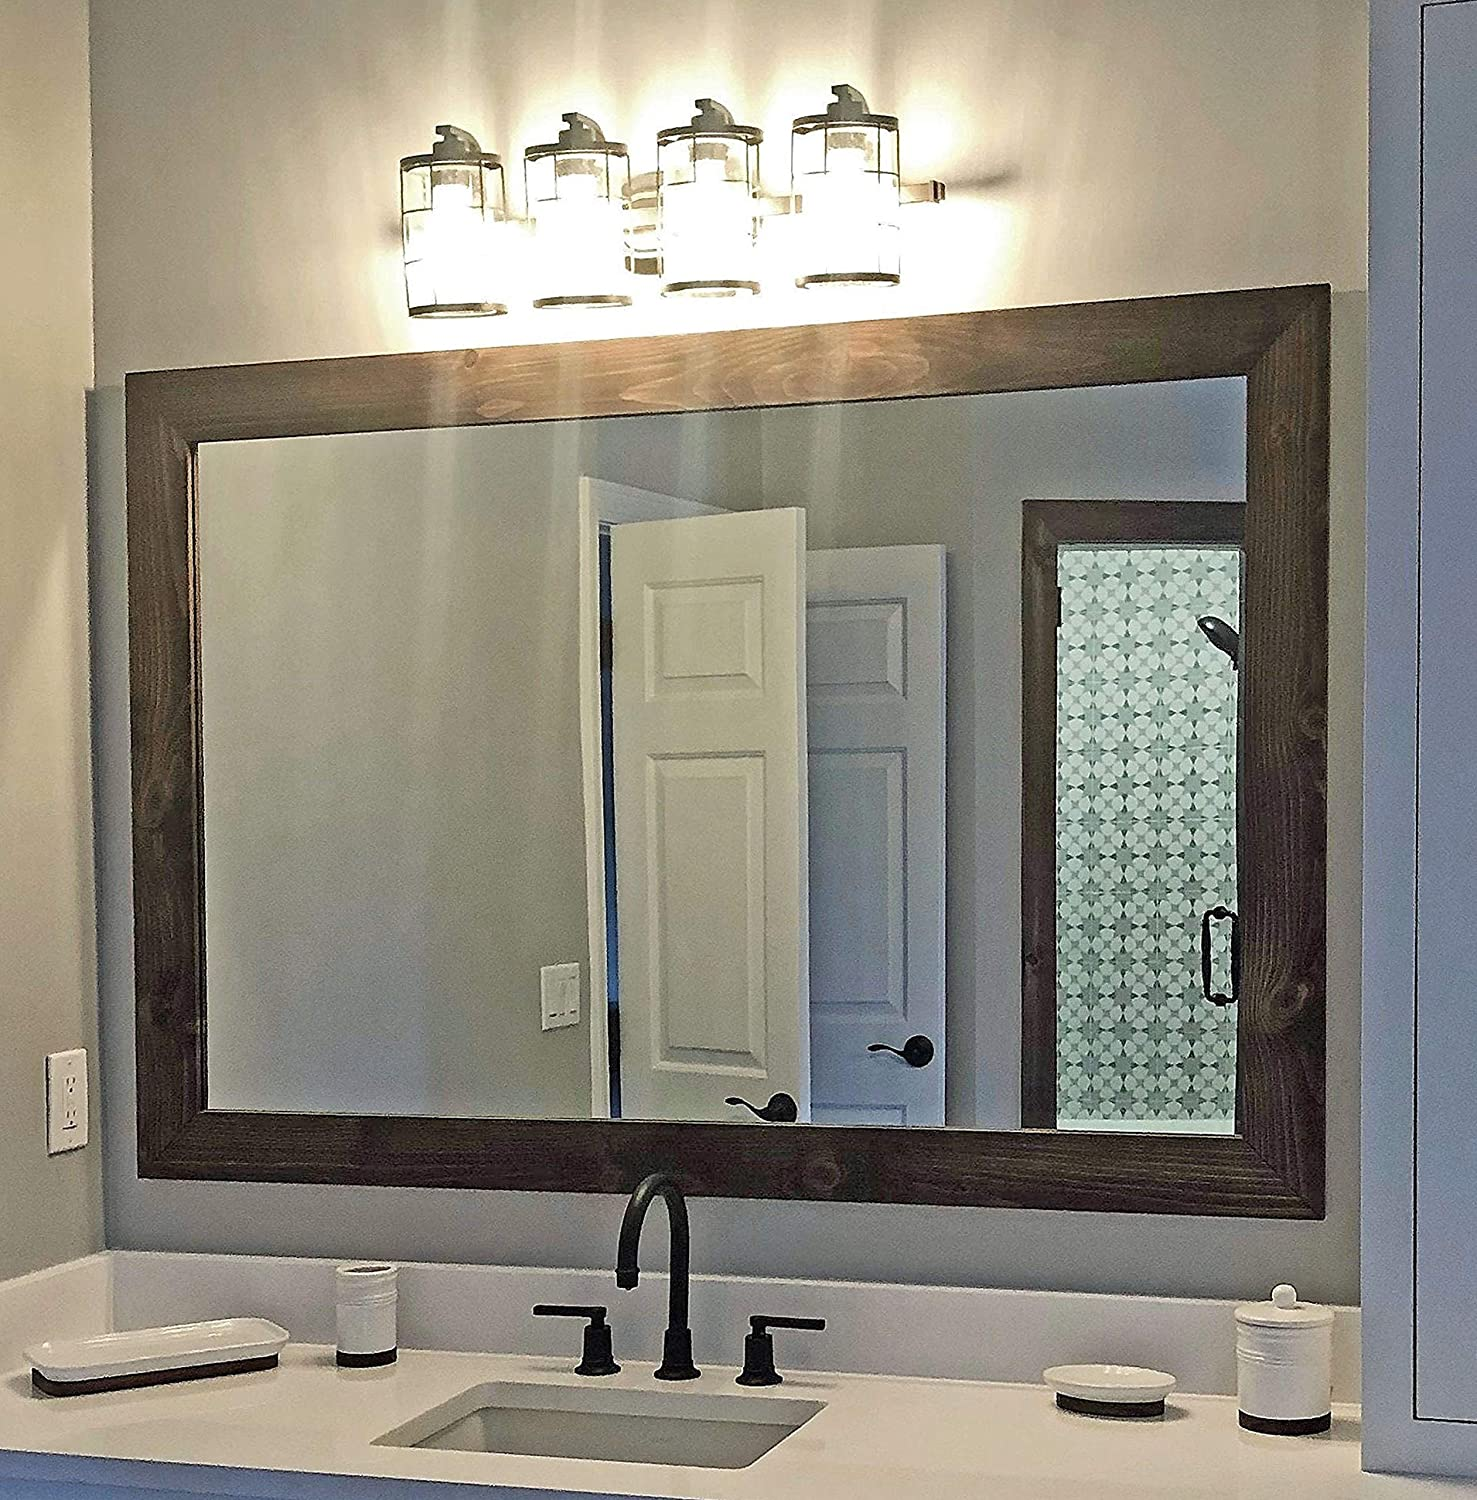 Amazon Com Shiplap Rustic Wood Framed Mirror 20 Stain Colors Special Walnut Reclaimed Styled Wood Large Vanity Mirror Bathroom Mirror Master Bathroom Mirror Full Length Mirror Big Mirror Hanging Mirror Handmade Products